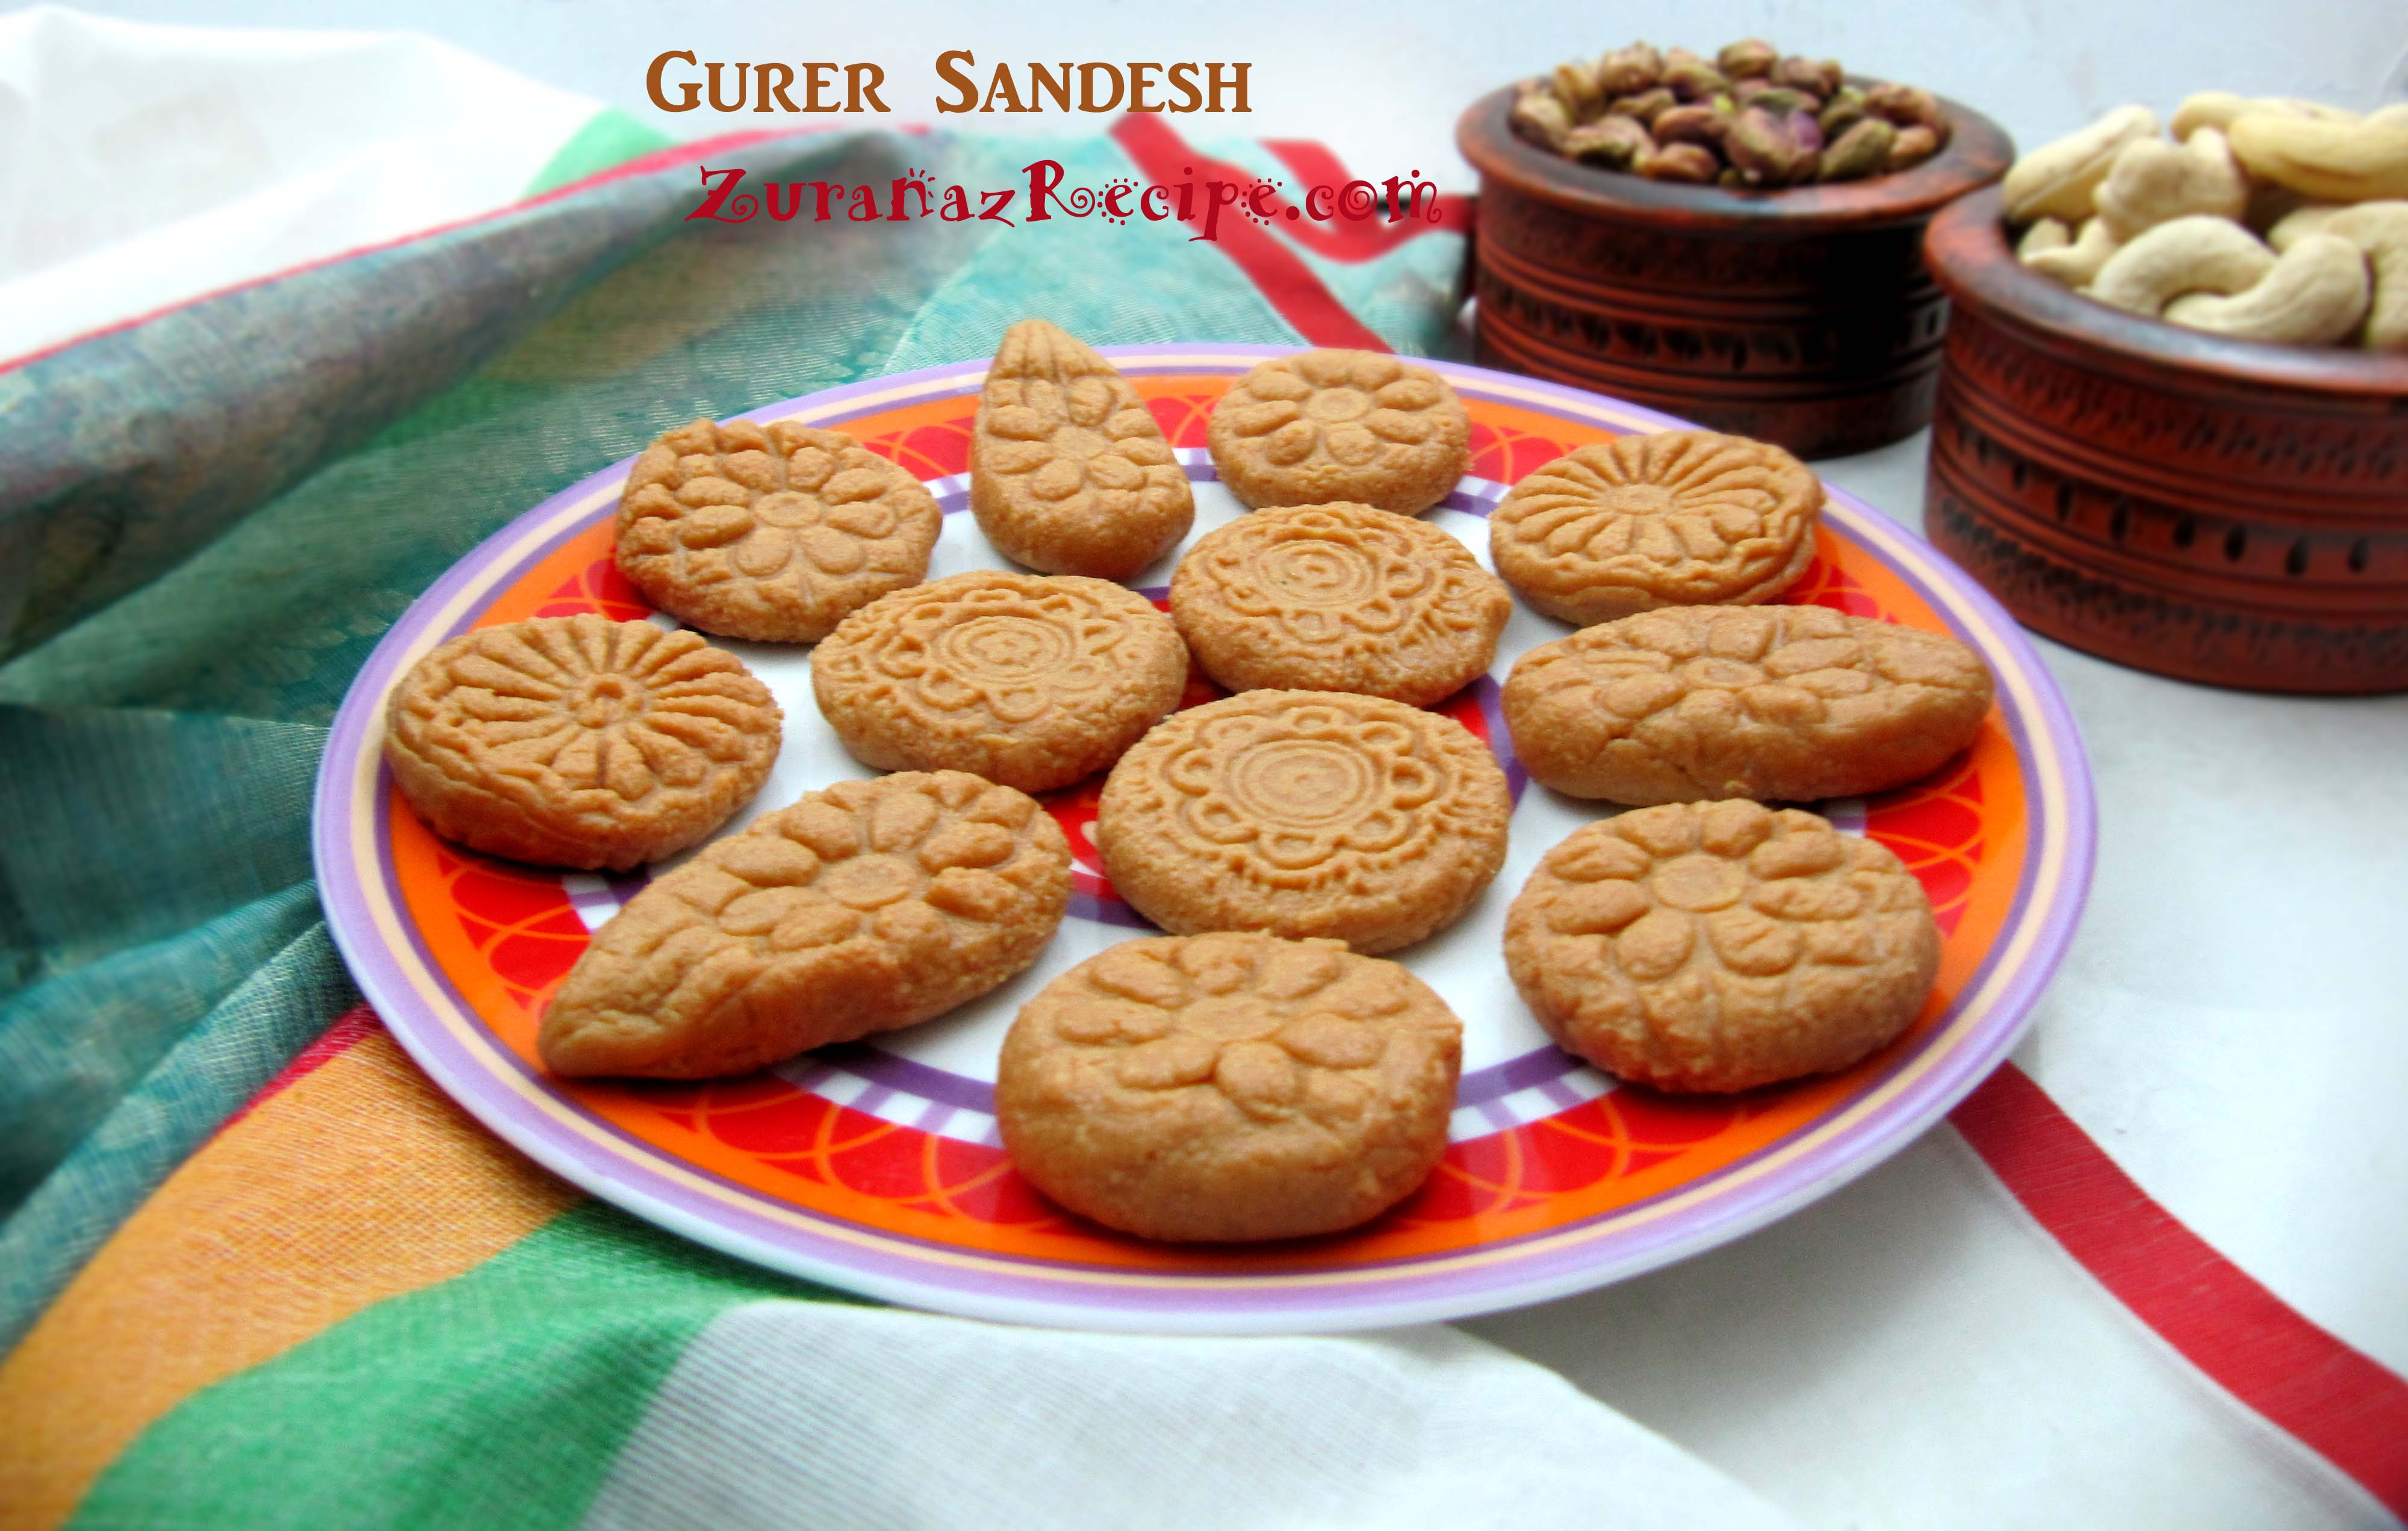 ... dessert rui macher dim korolla bhaji bhapa sandesh steamed sandesh